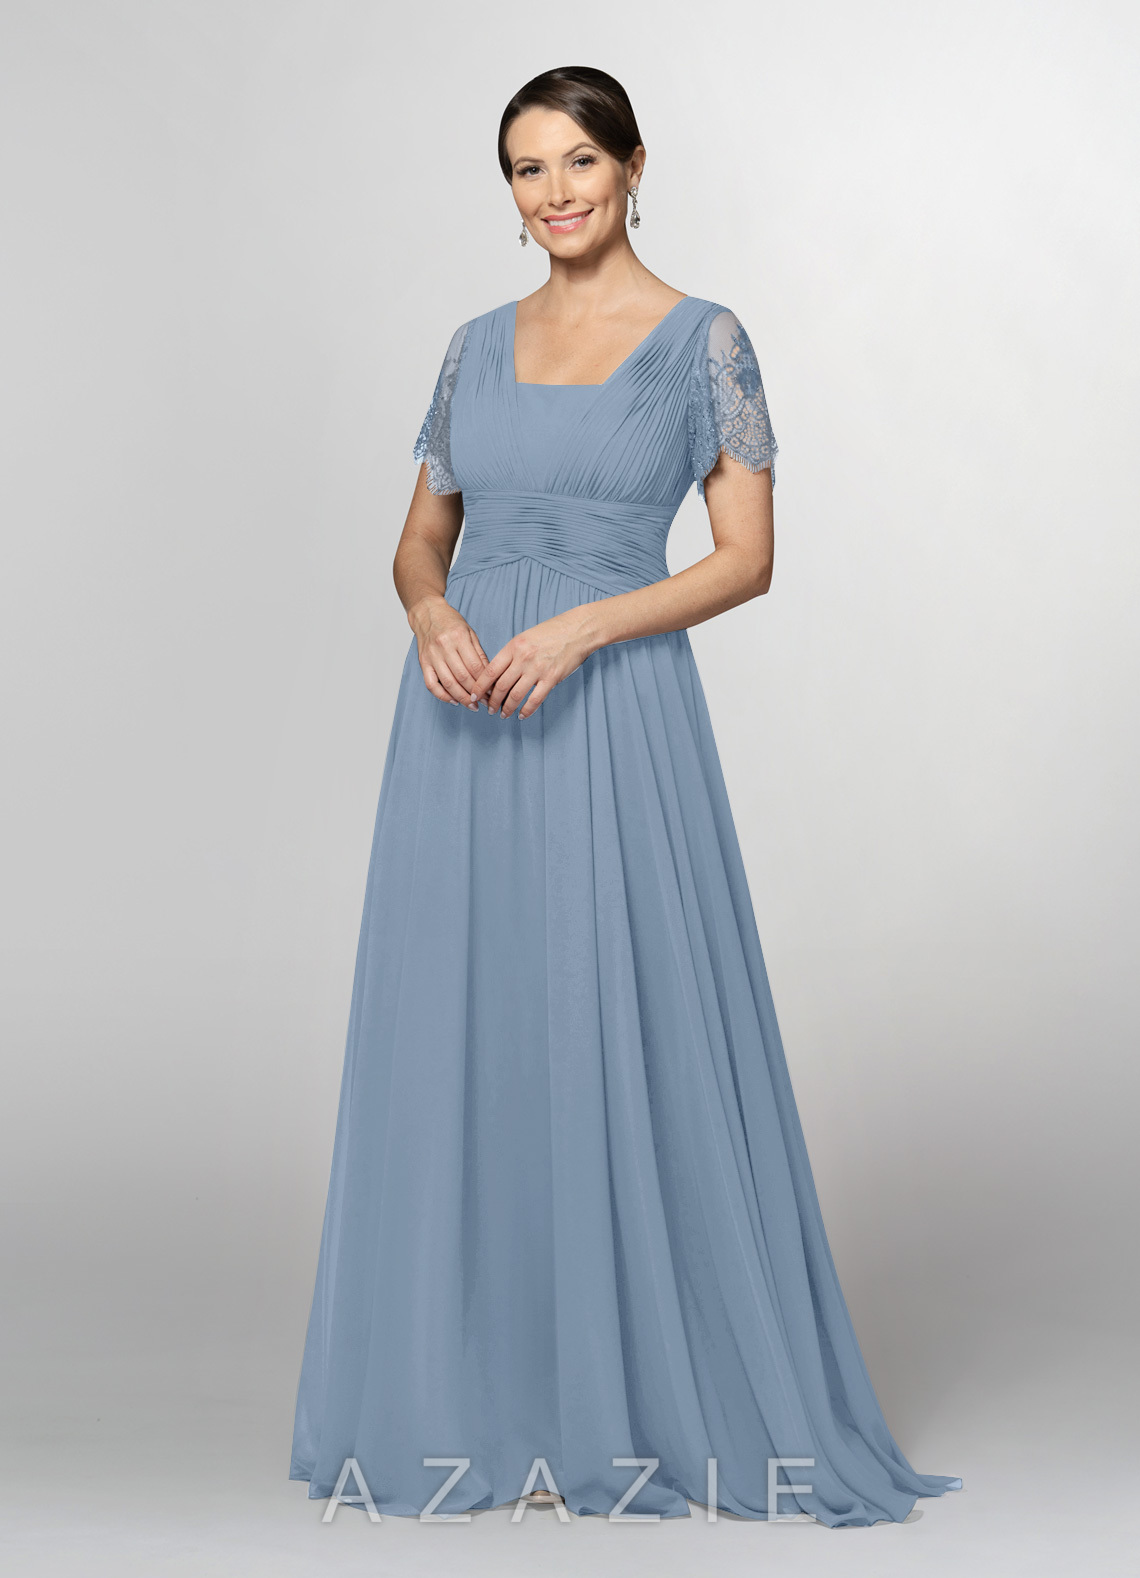 de832c2676d7 Azazie Nevaeh MBD Mother Of The Bride Dress | Azazie